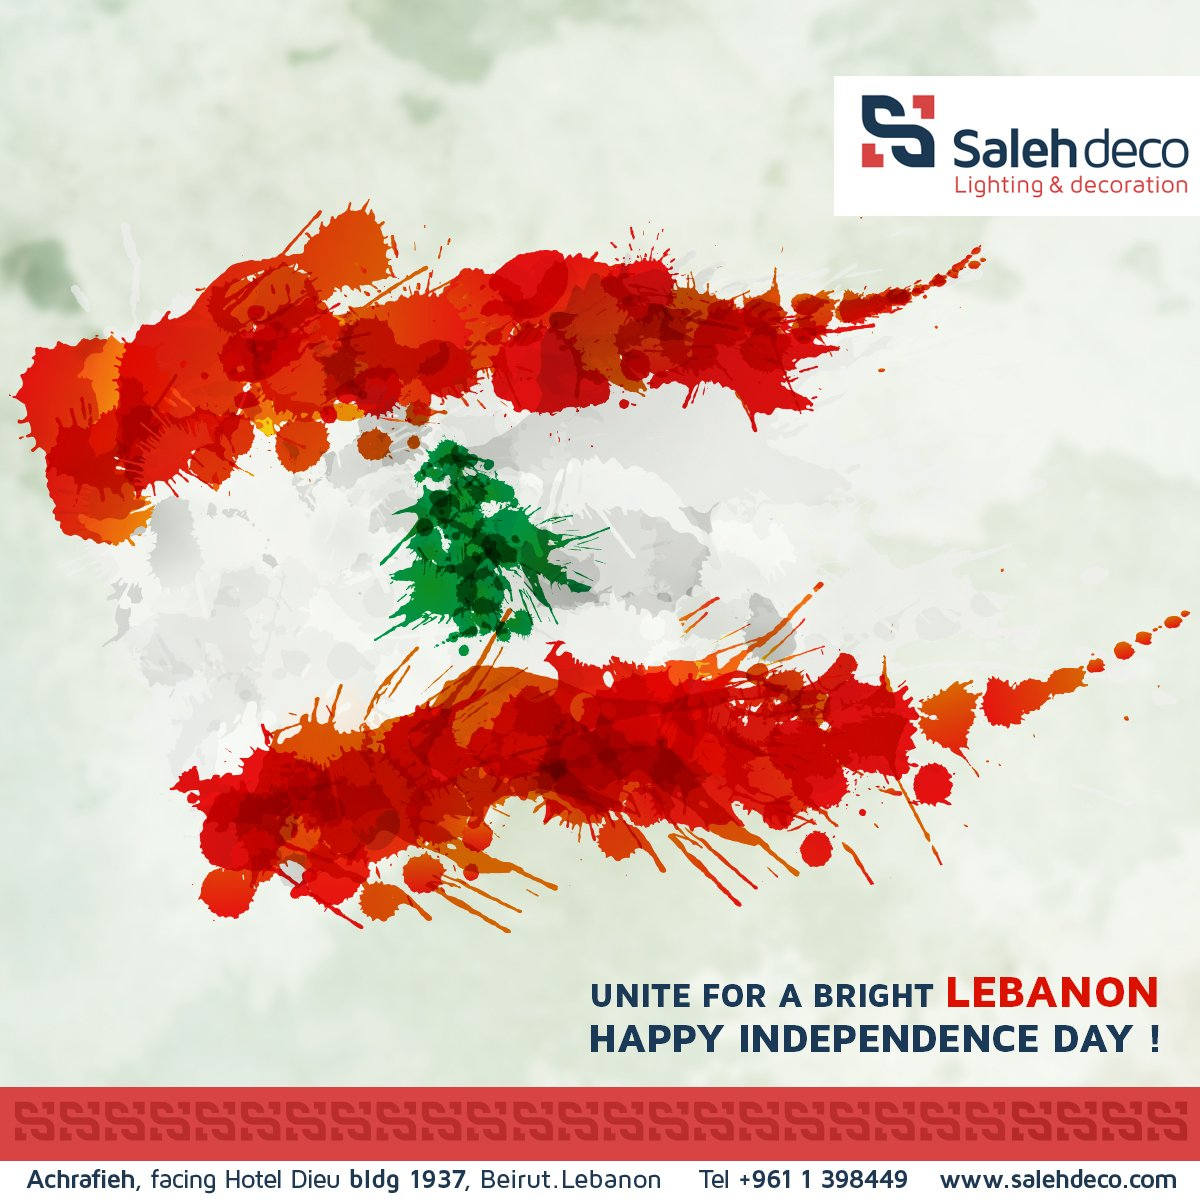 Happy Independence day LEBANON! #independenceday #lebanon #livelovelebanon #livelovebeirut #independence #freedom https://t.co/o80RdwRvCF